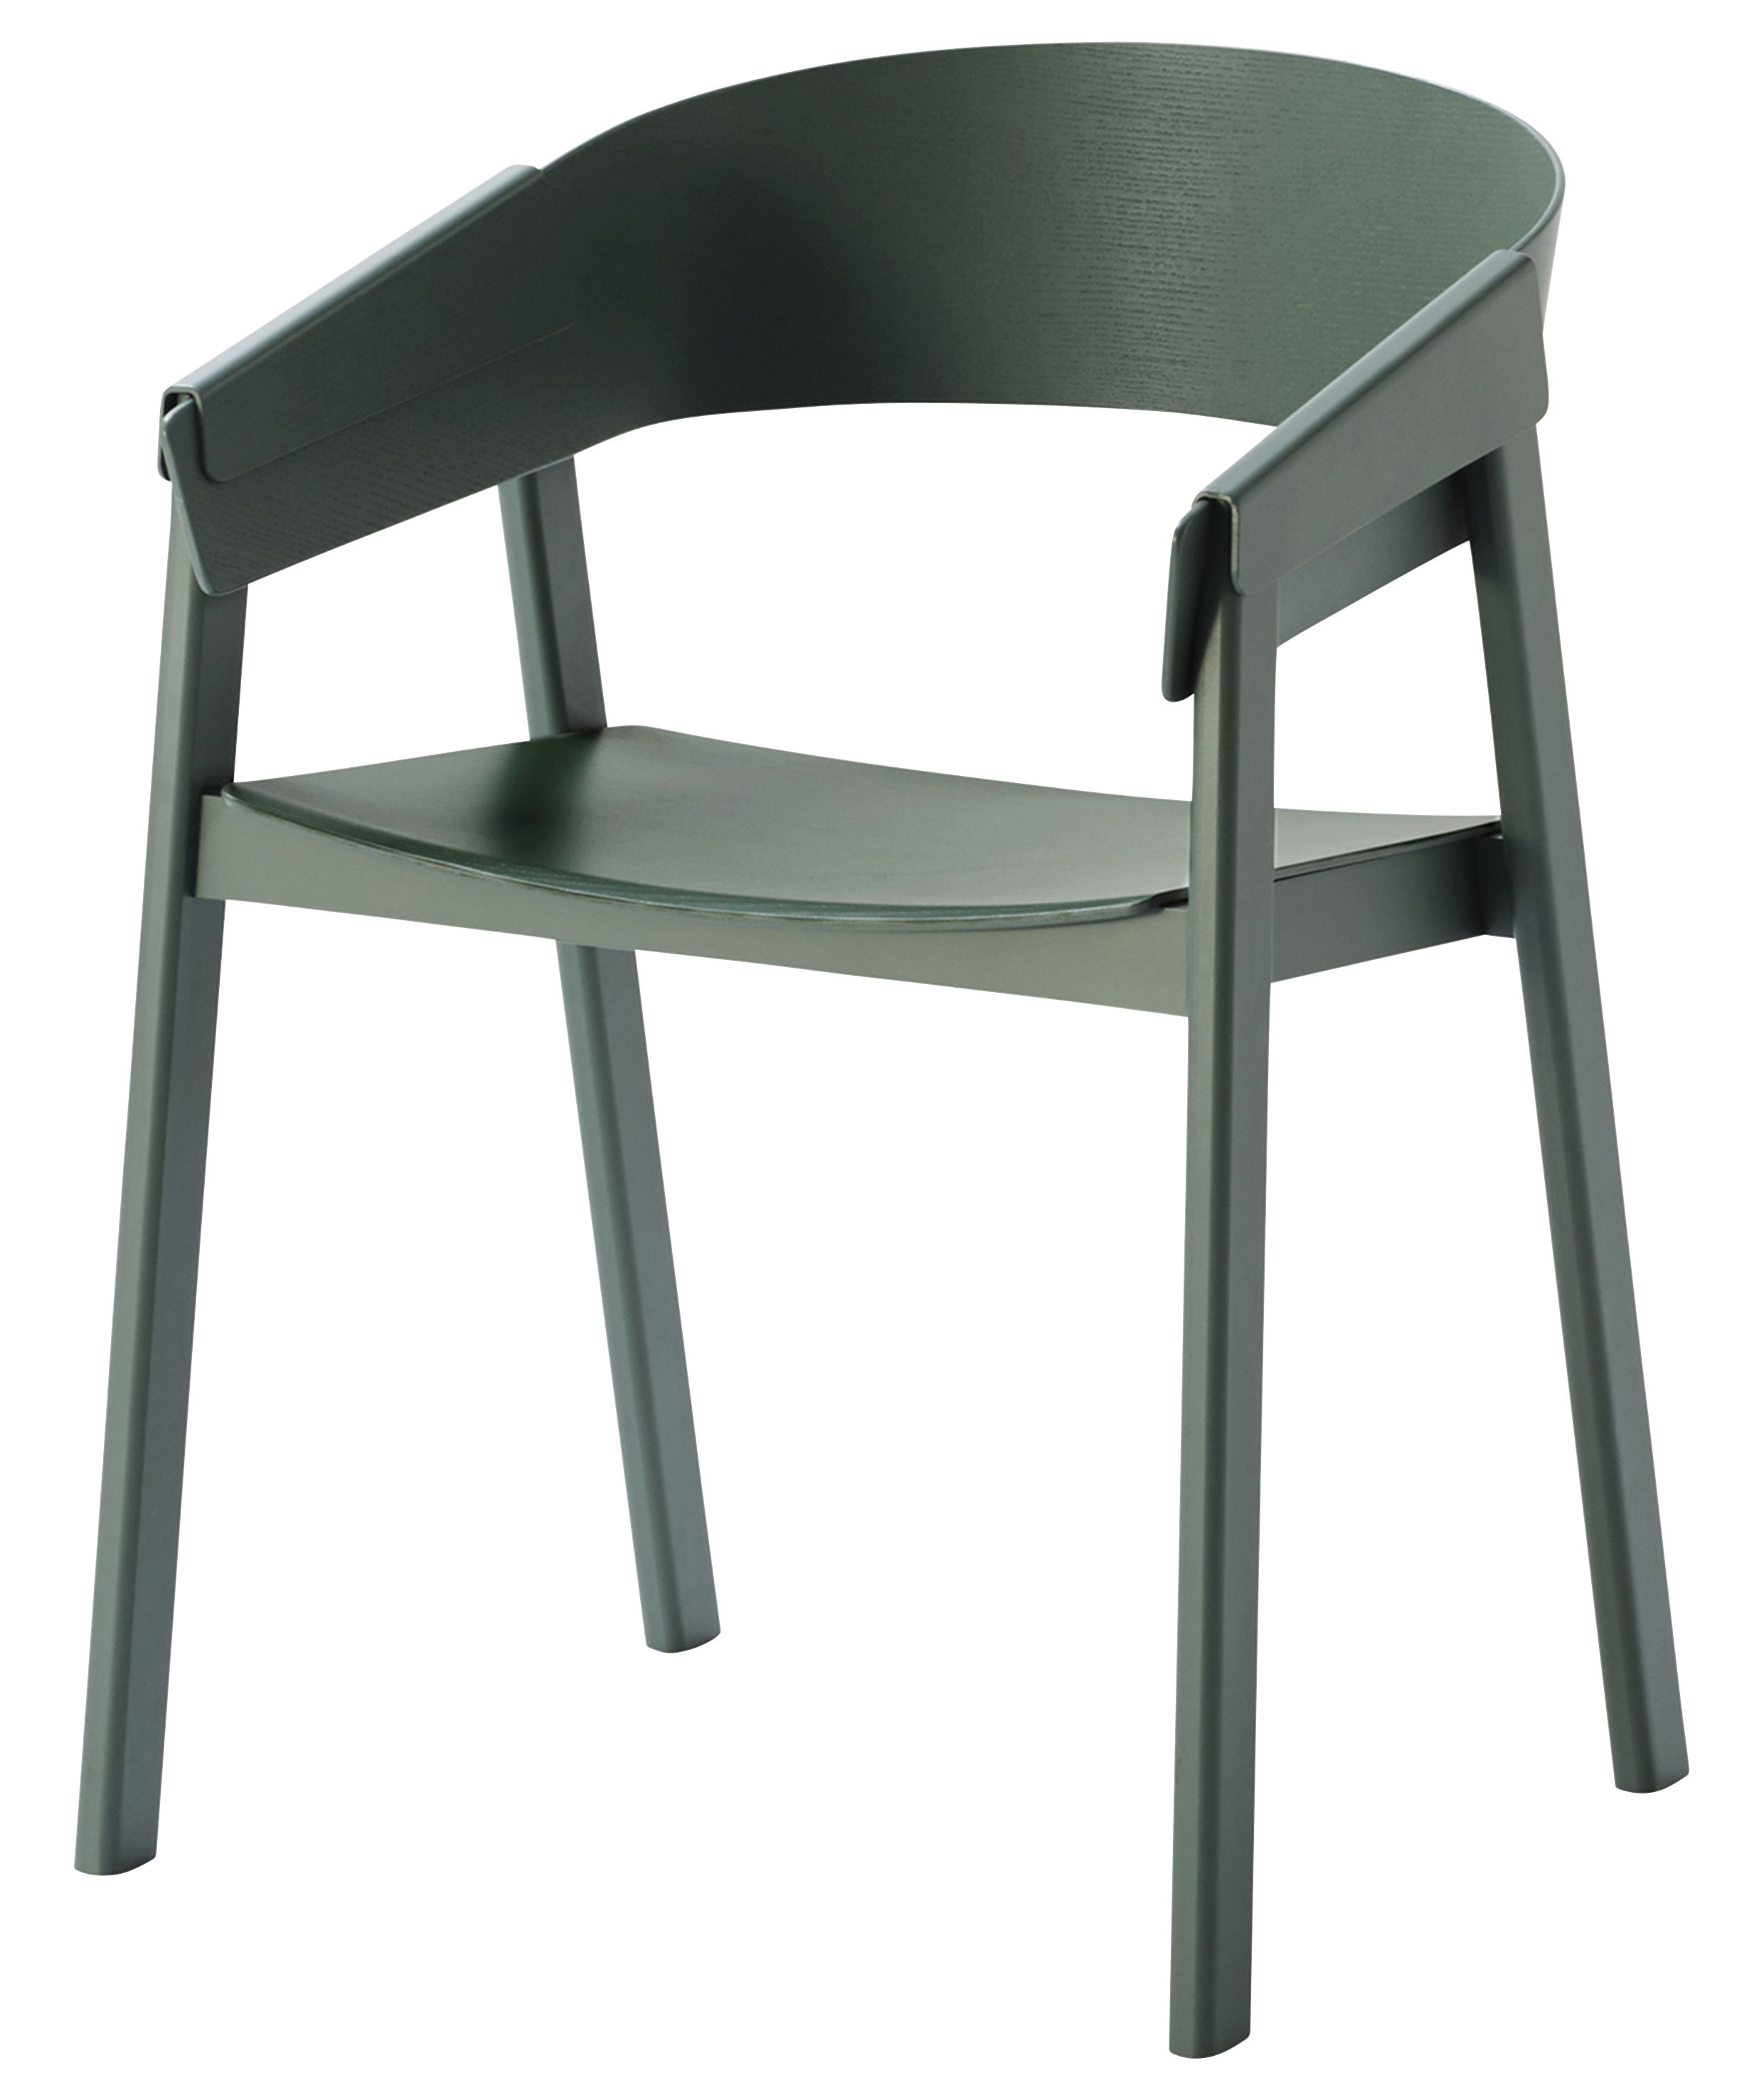 Furniture - Chairs - Cover Armchair - Wood by Muuto - Green - Lacquered ash